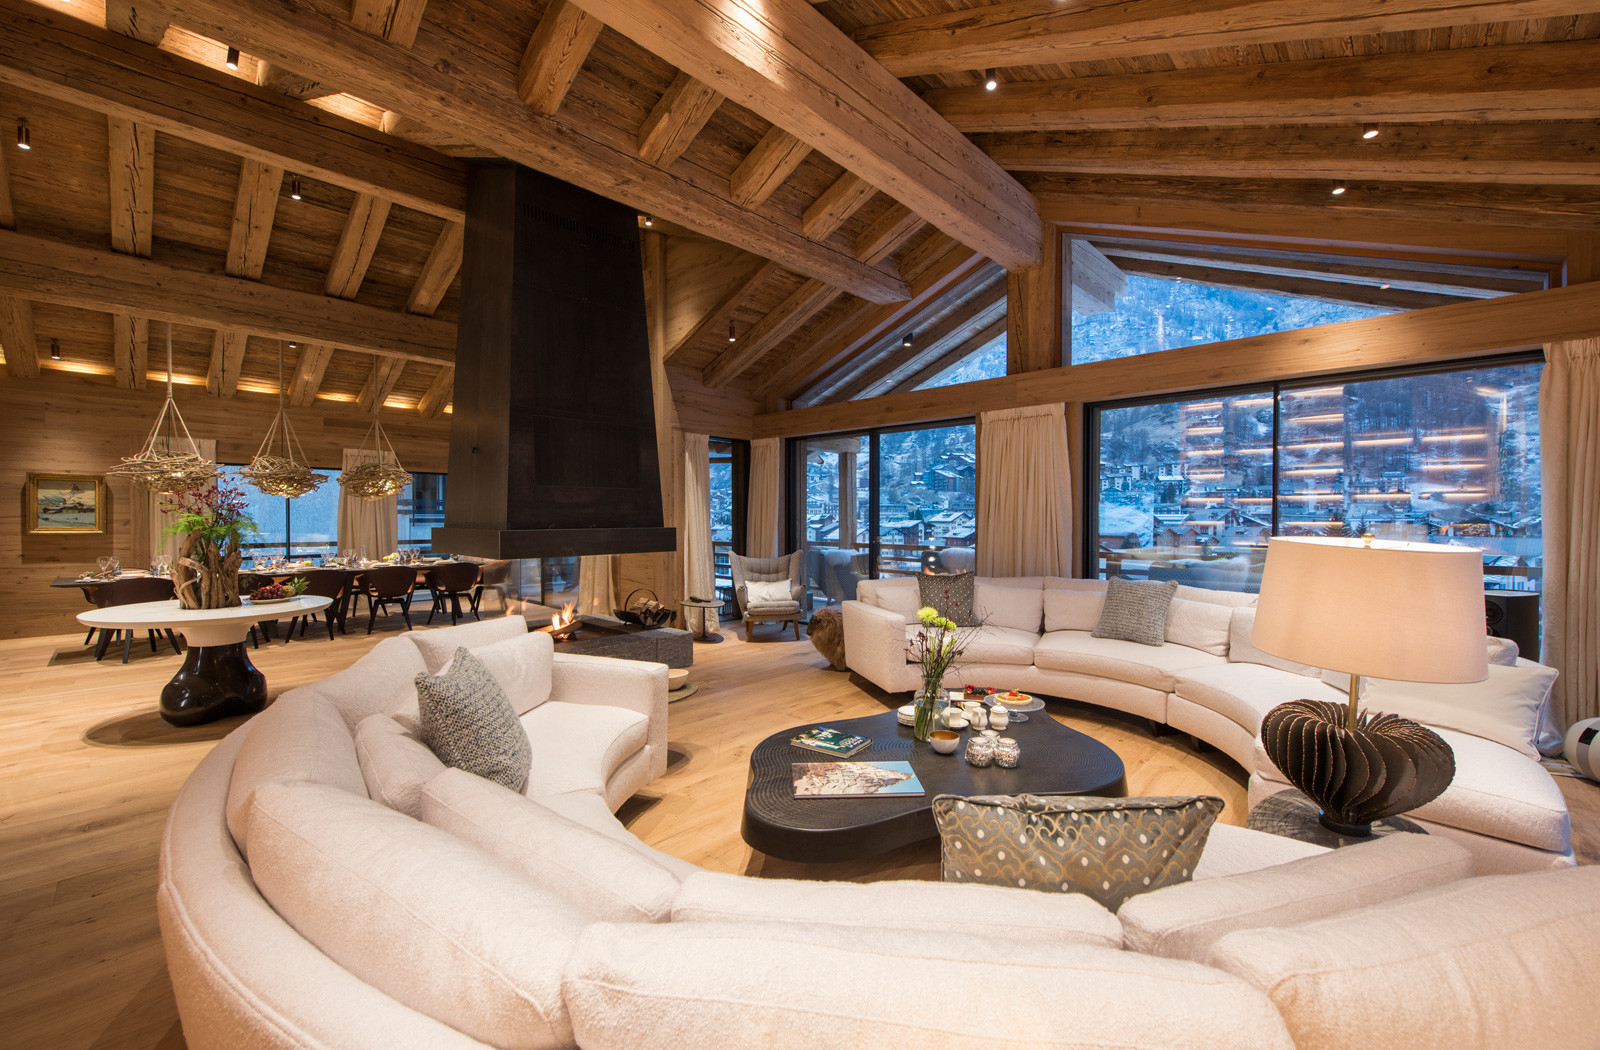 Afbeelding-optimalisatie-kings-avenue-kings-avenue-zermatt-snow-chalet-childfriendly-sauna-jacuzzi-home-cinema-house-025-2